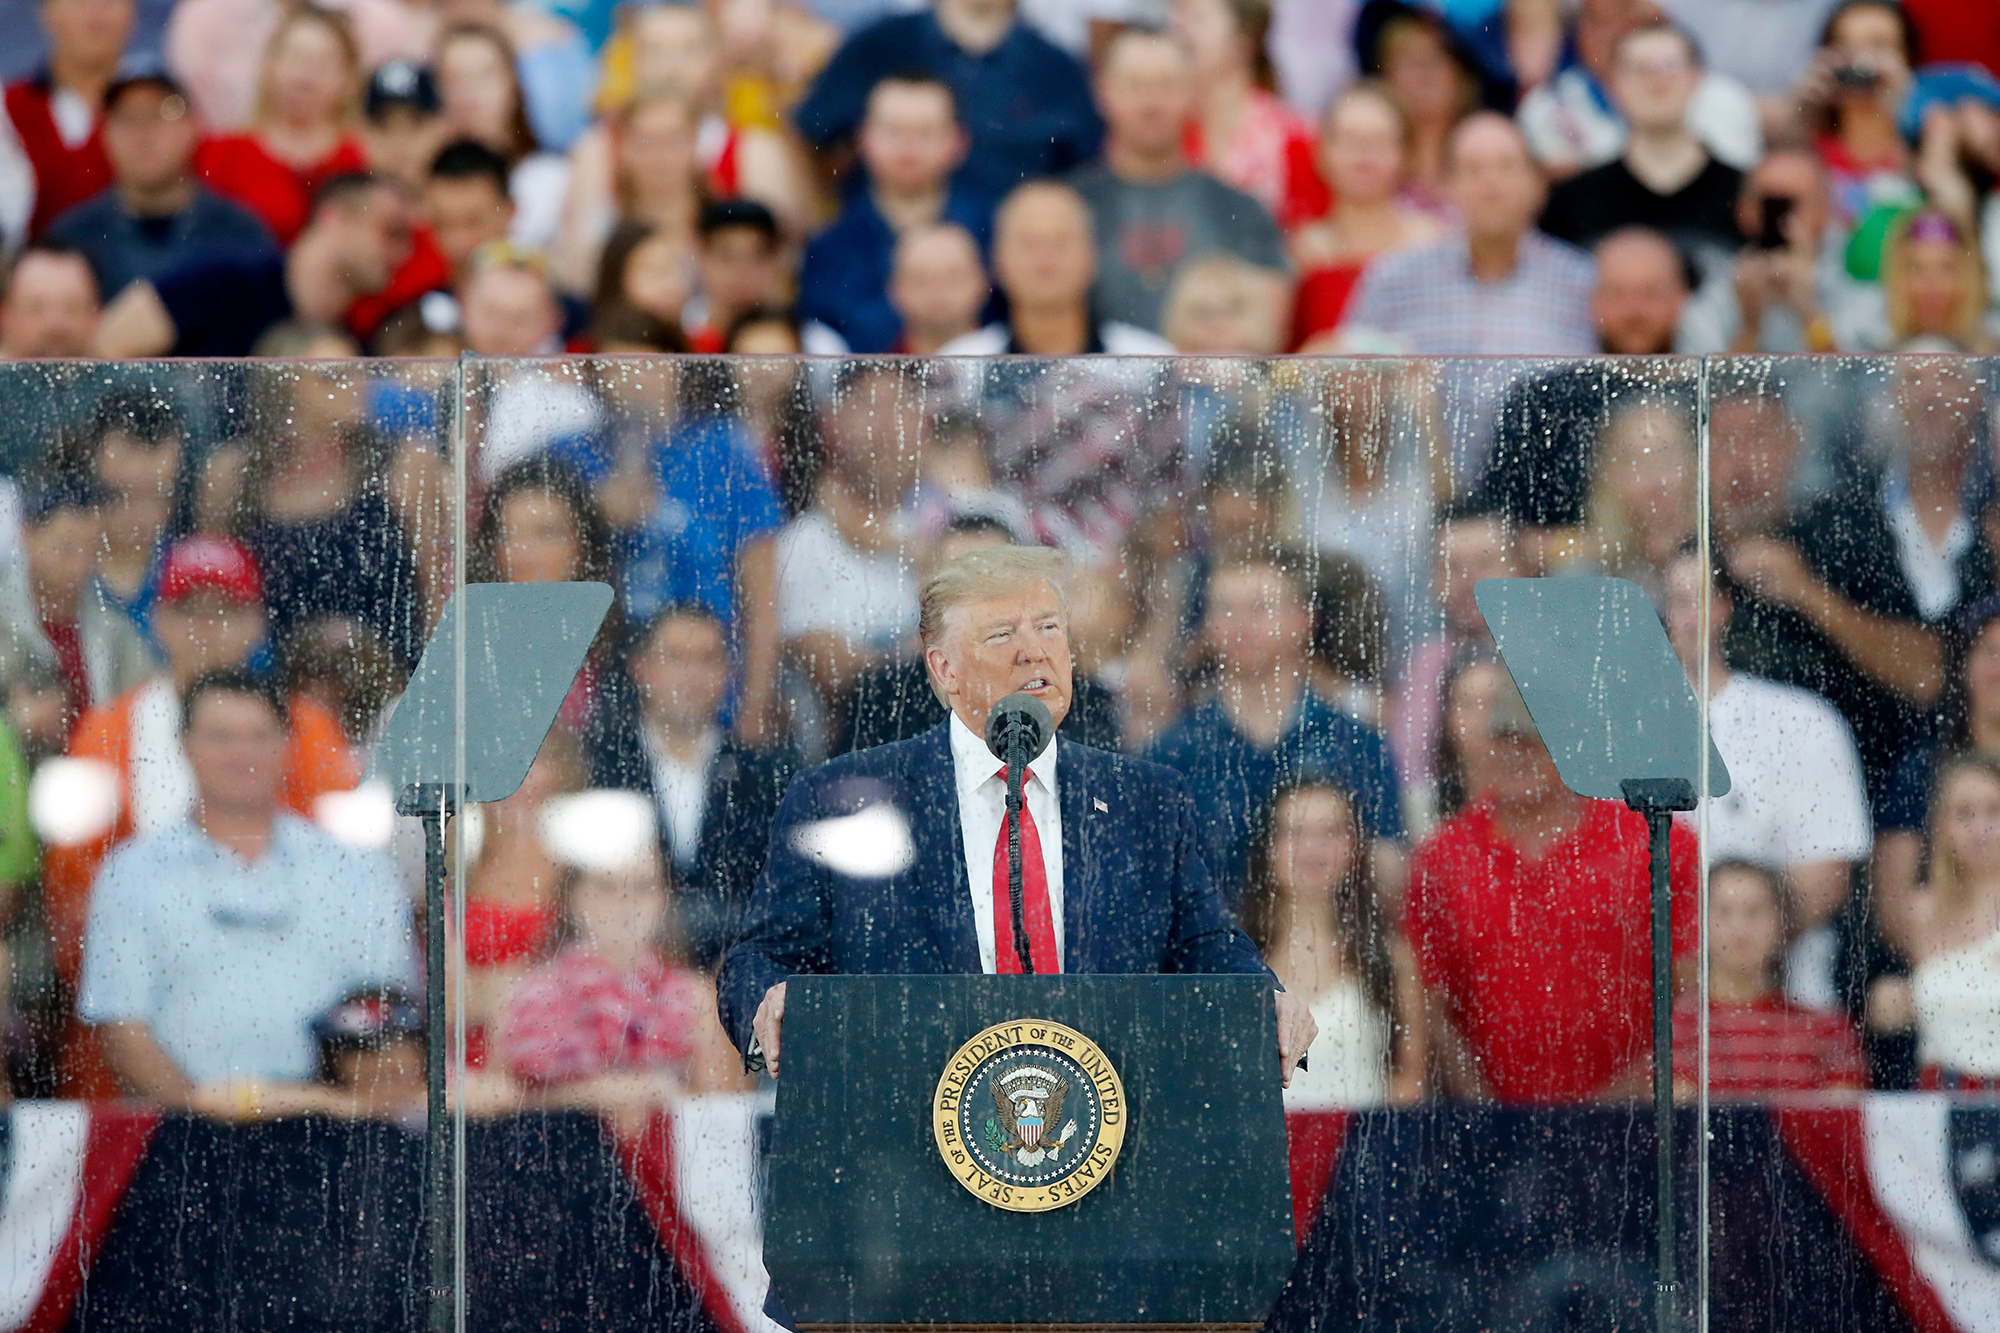 Trump Says Troops 'Took Over Airports' During Revolutionary War, in Rainy Fourth of July Speech